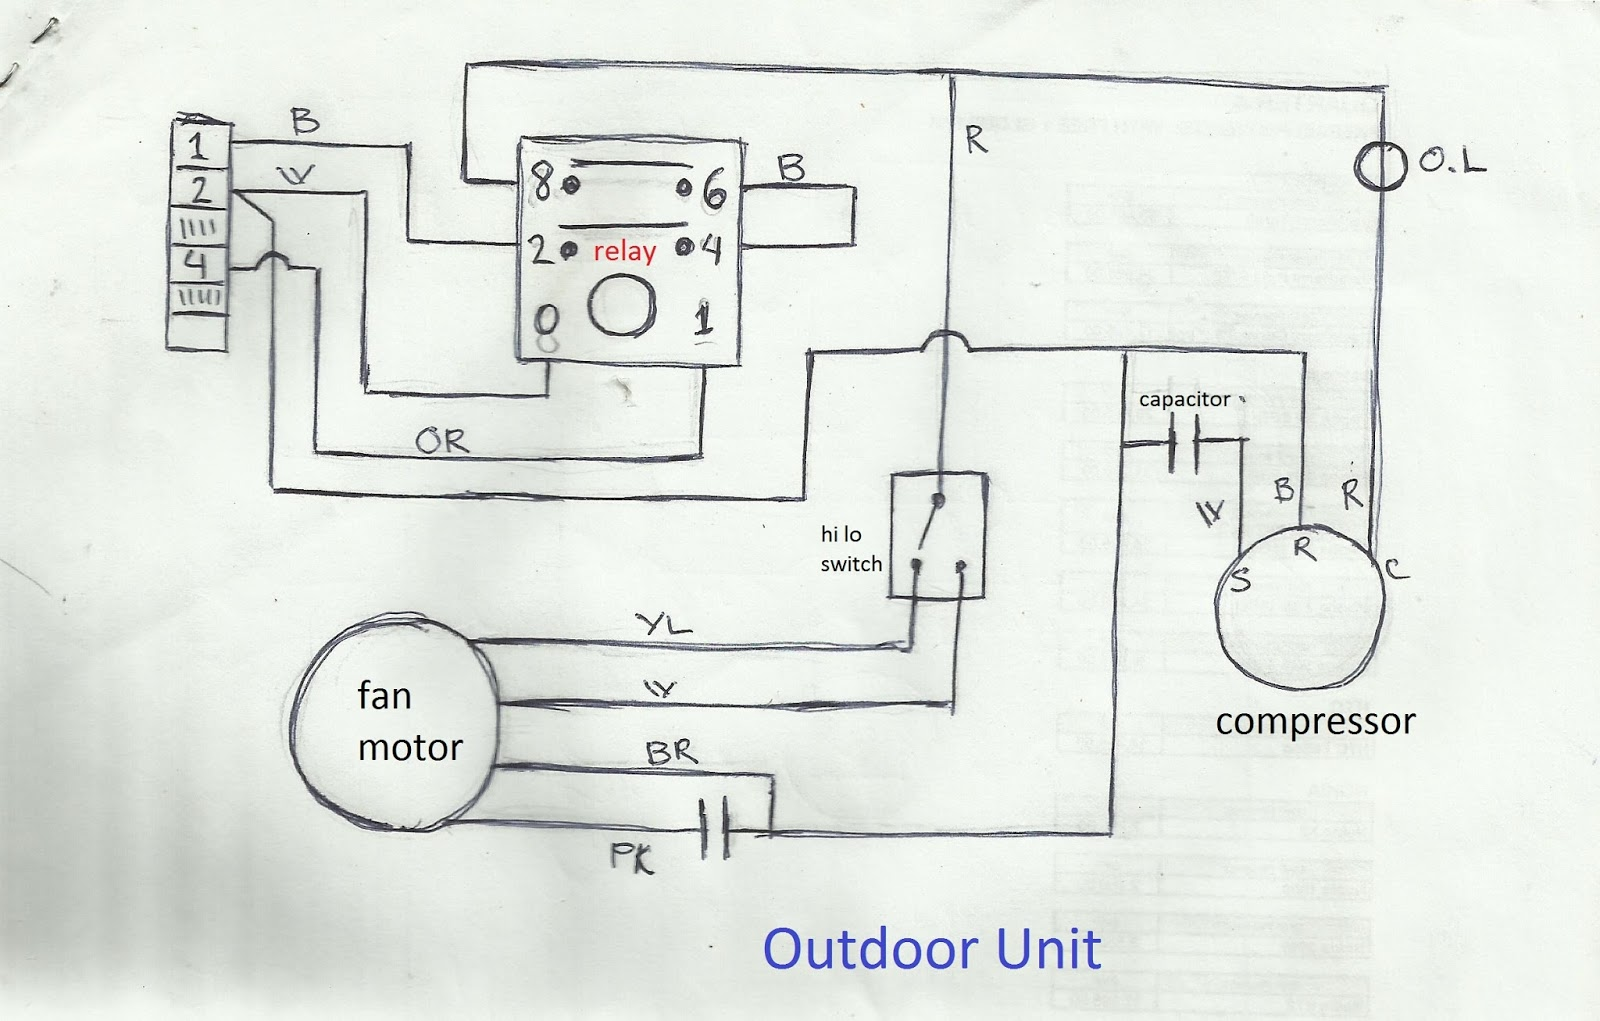 Outdoor Motor Capacitor Wiring Just Another Diagram Blog Single Phase Diagrams Electric Start Run Air Conditioner Fan Library Rh 37 Akszer Eu 12v Motors